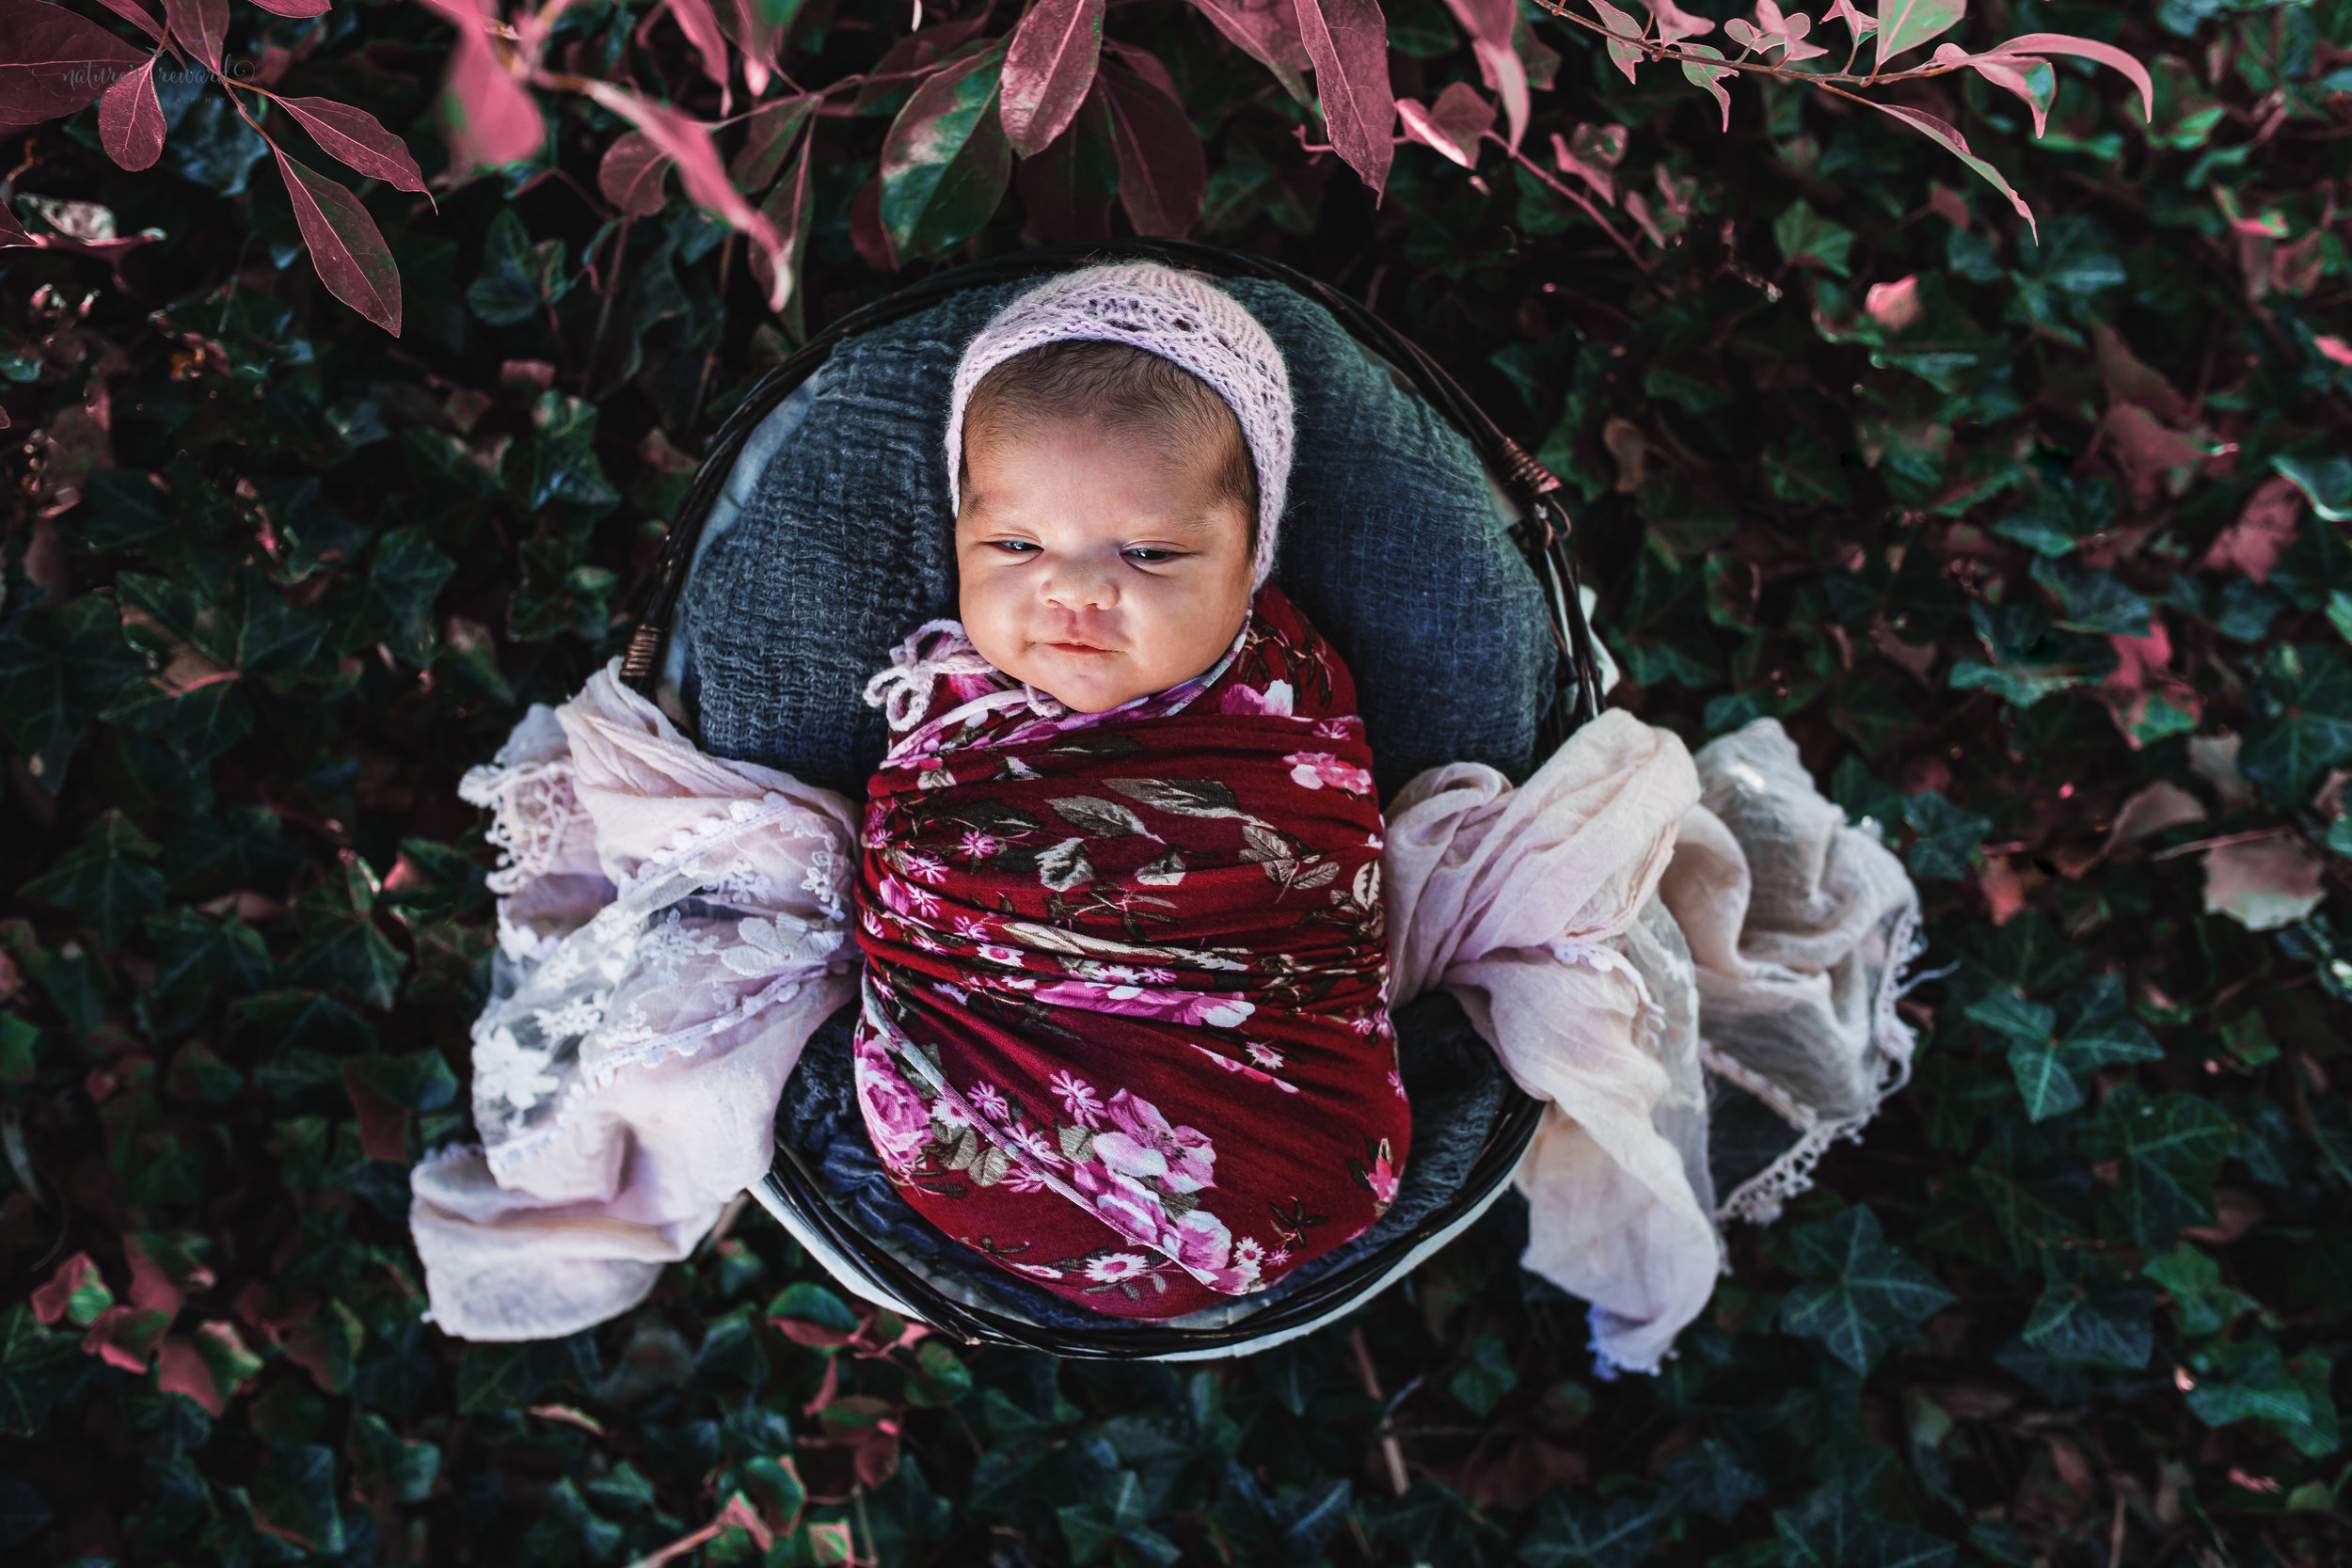 Newborn baby girl in a red floral wrap and pink bonnet in the garden- a portrait by Nature's Reward Photography